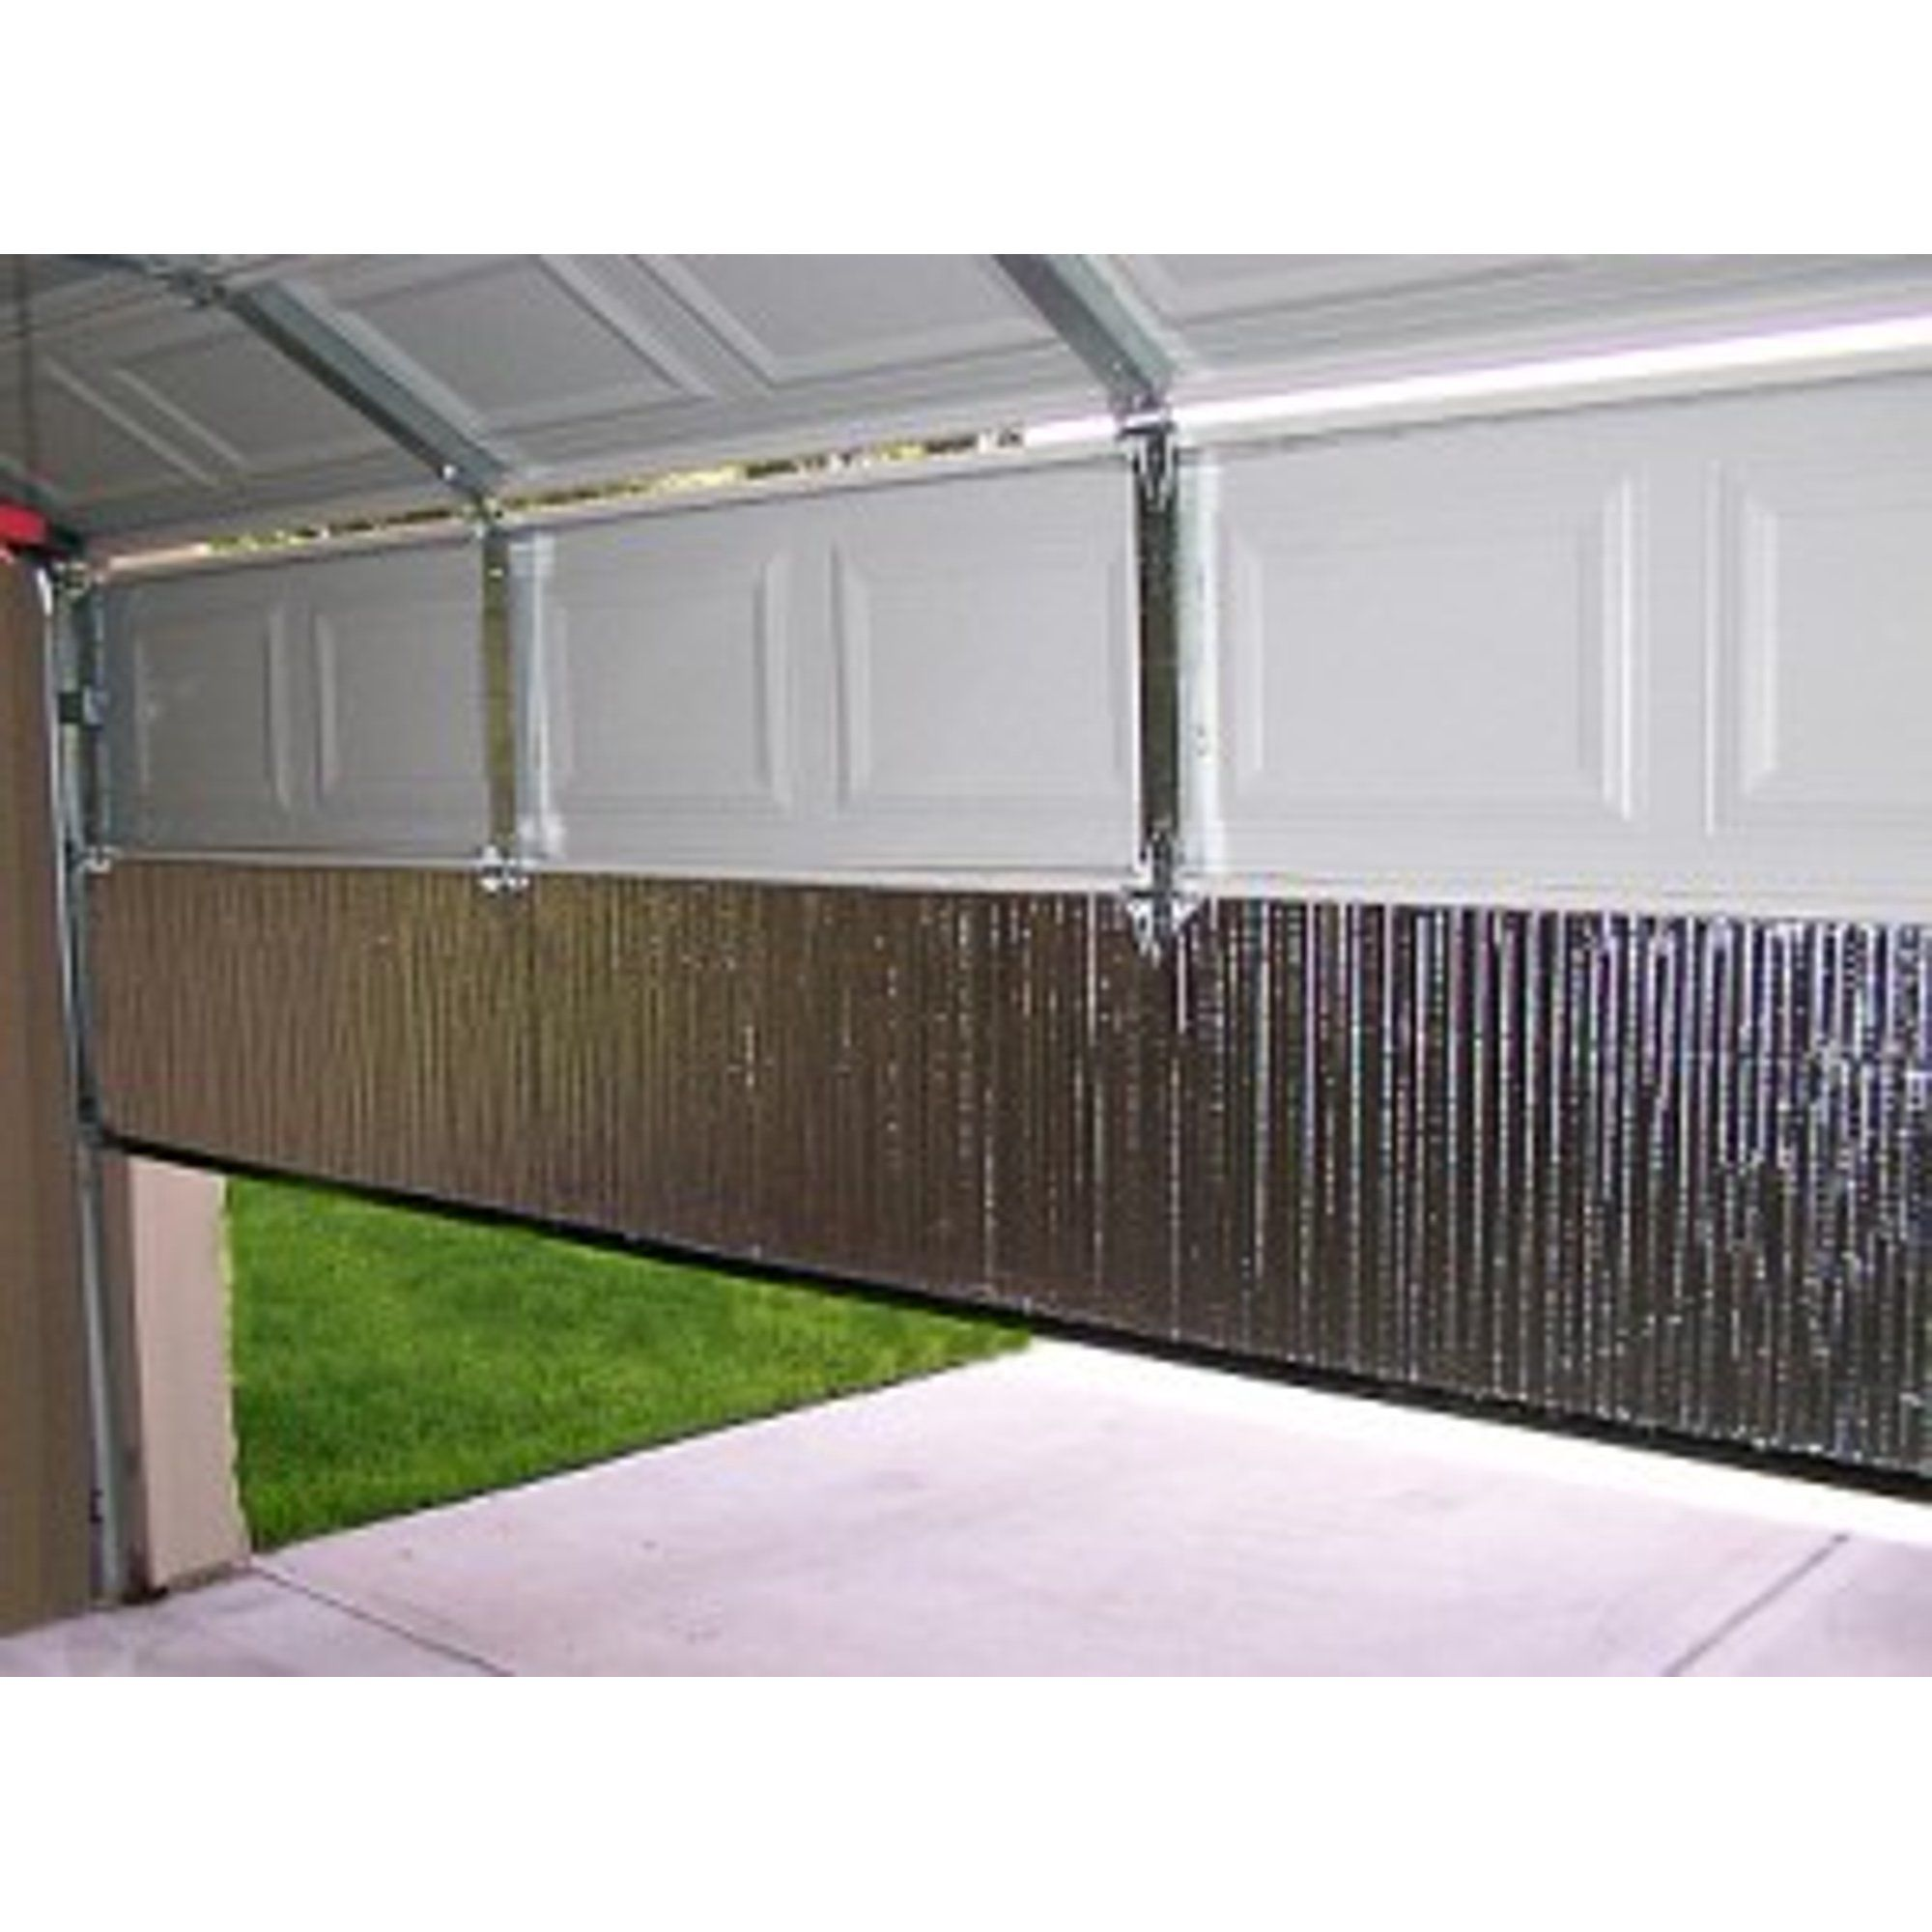 Pin on Garage door insulation kit